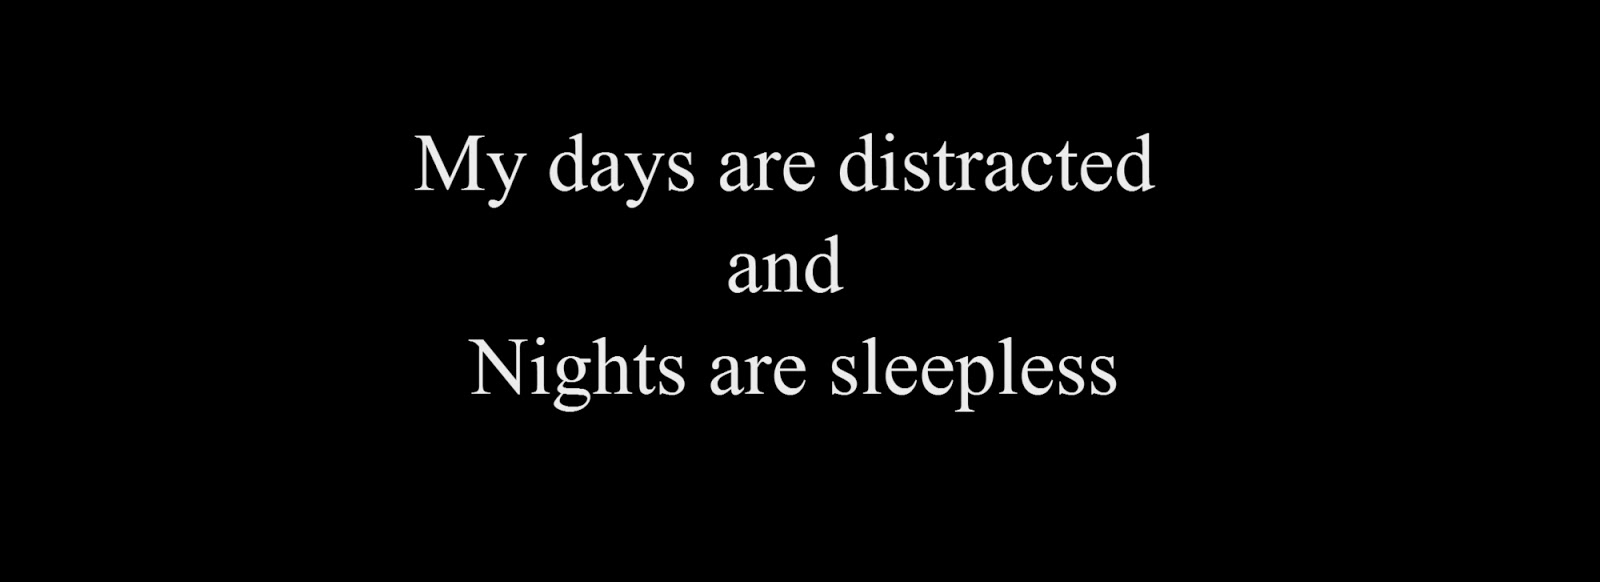 My days are distracted and nights are sleepless